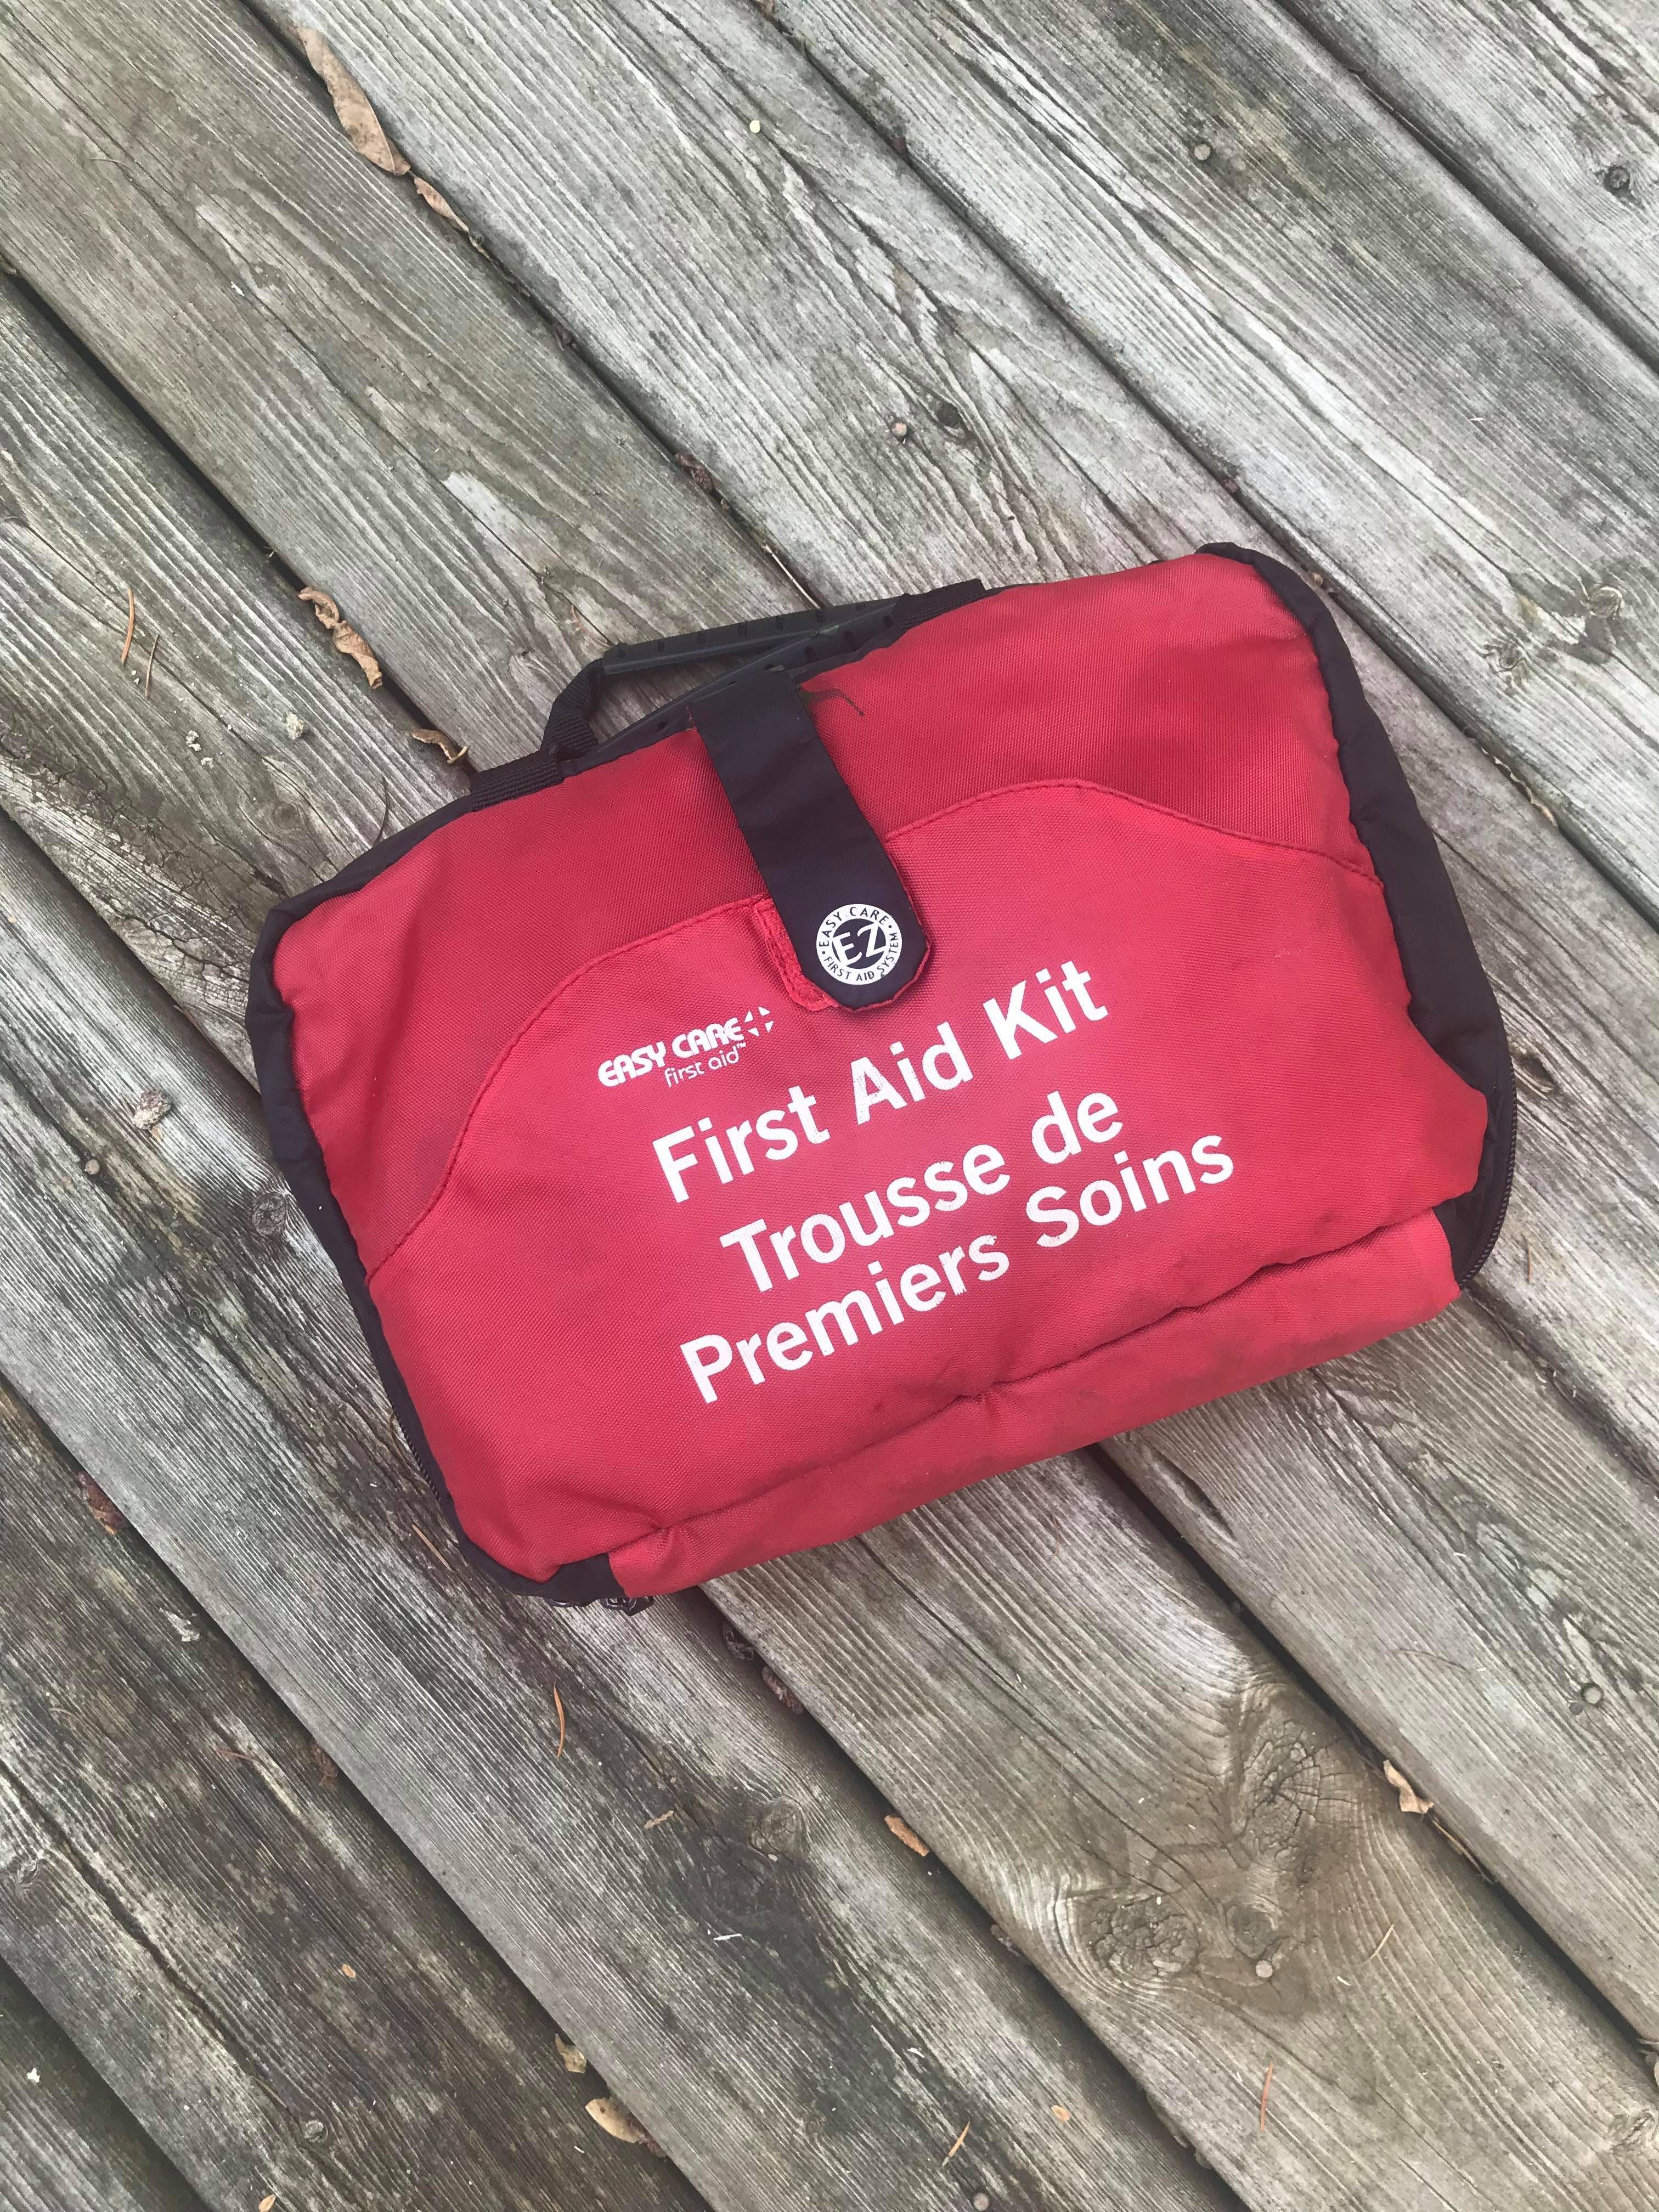 bring a first aid kit on your day trip